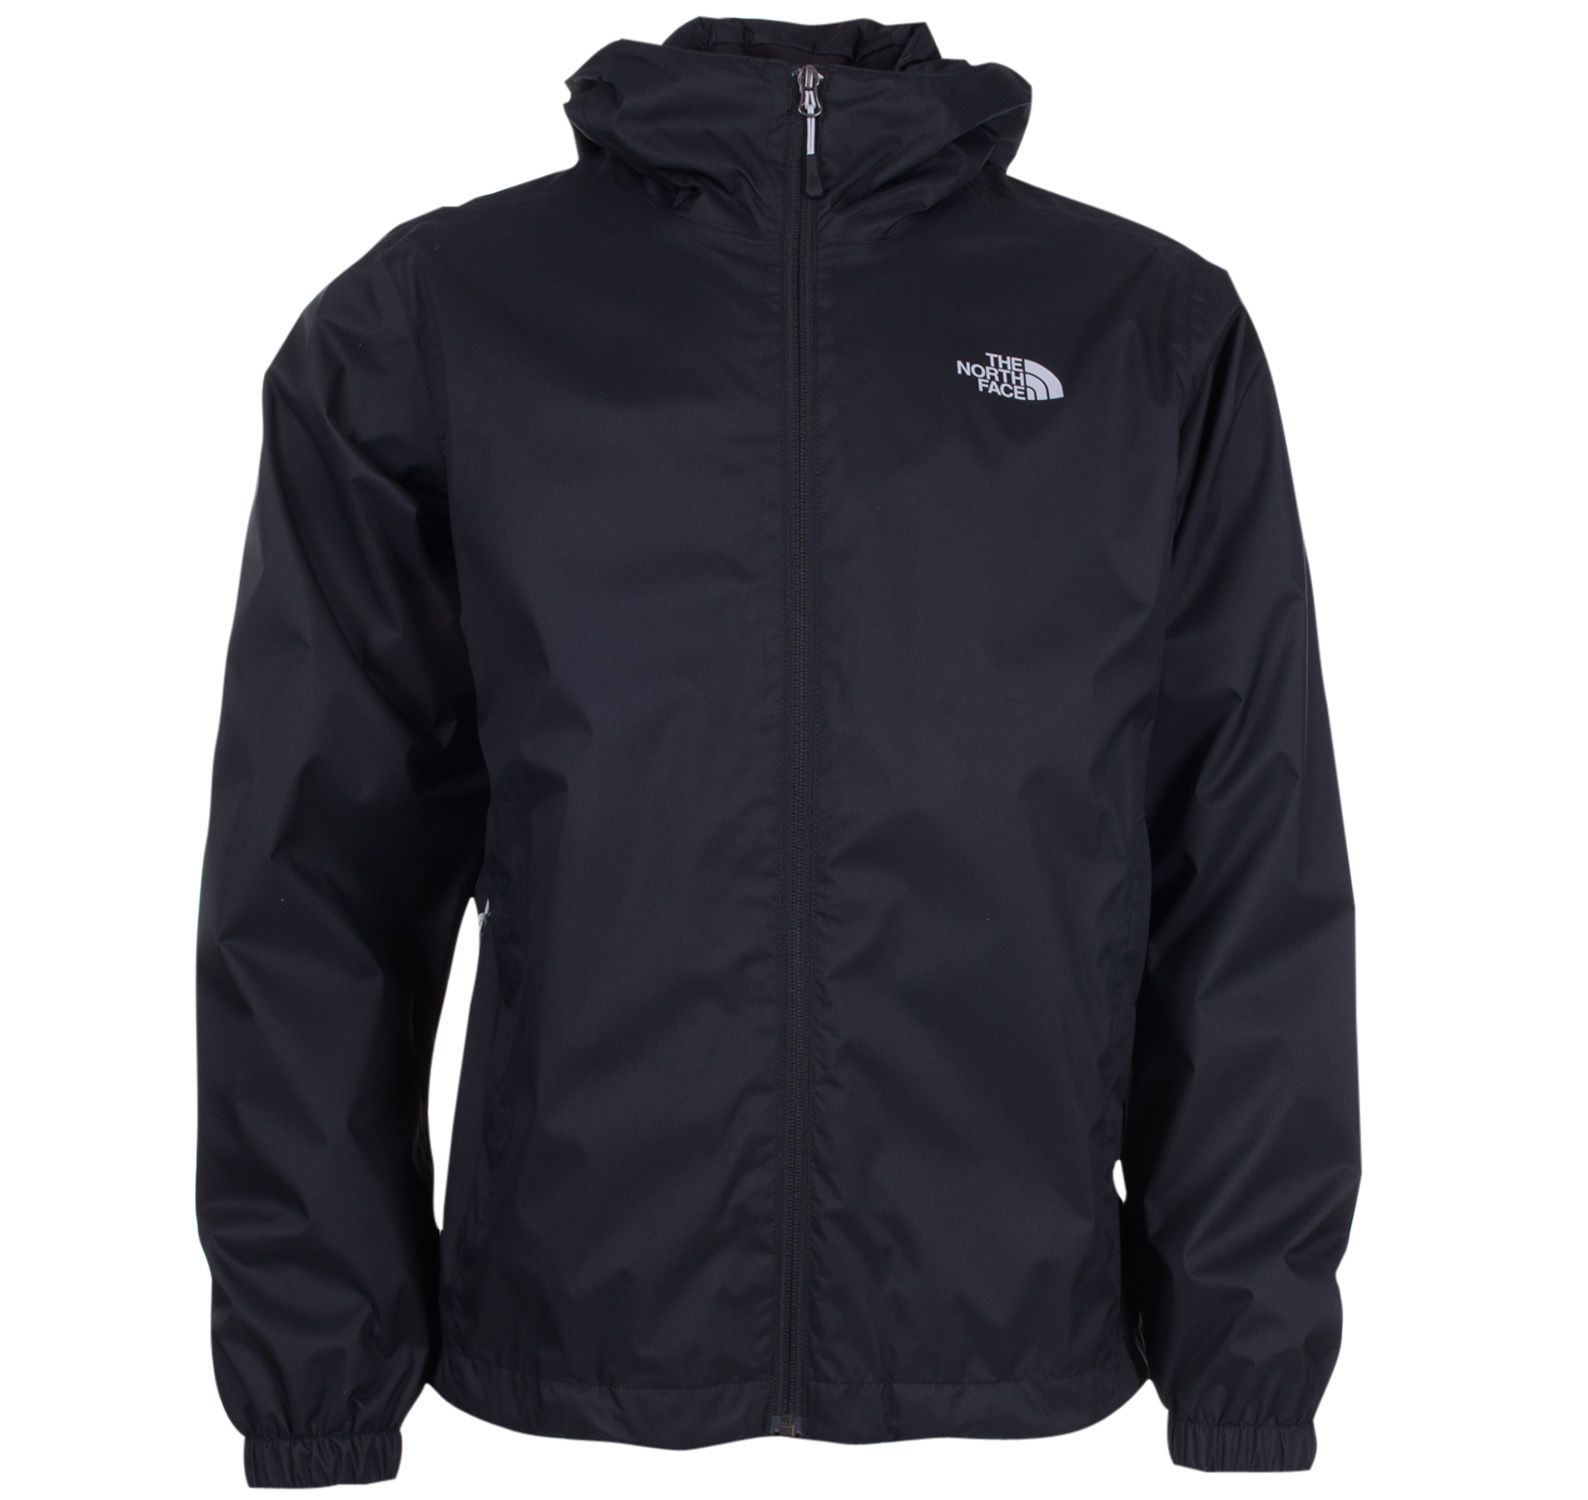 m quest jacket, tnf black, l, regnjackor